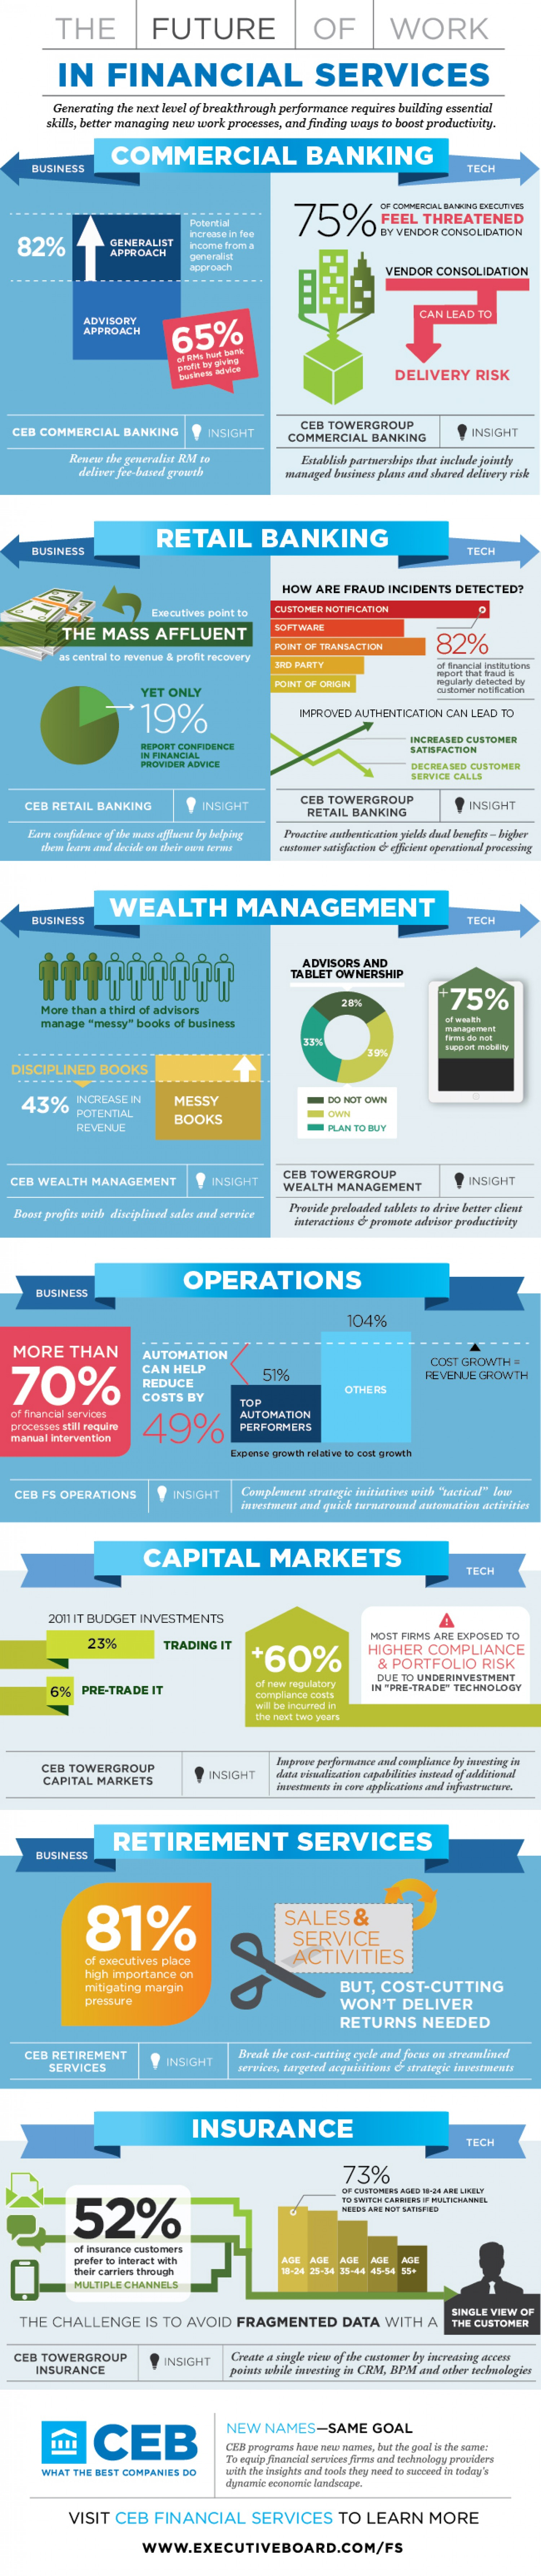 8. Commercial Banking Vs Retail Banking